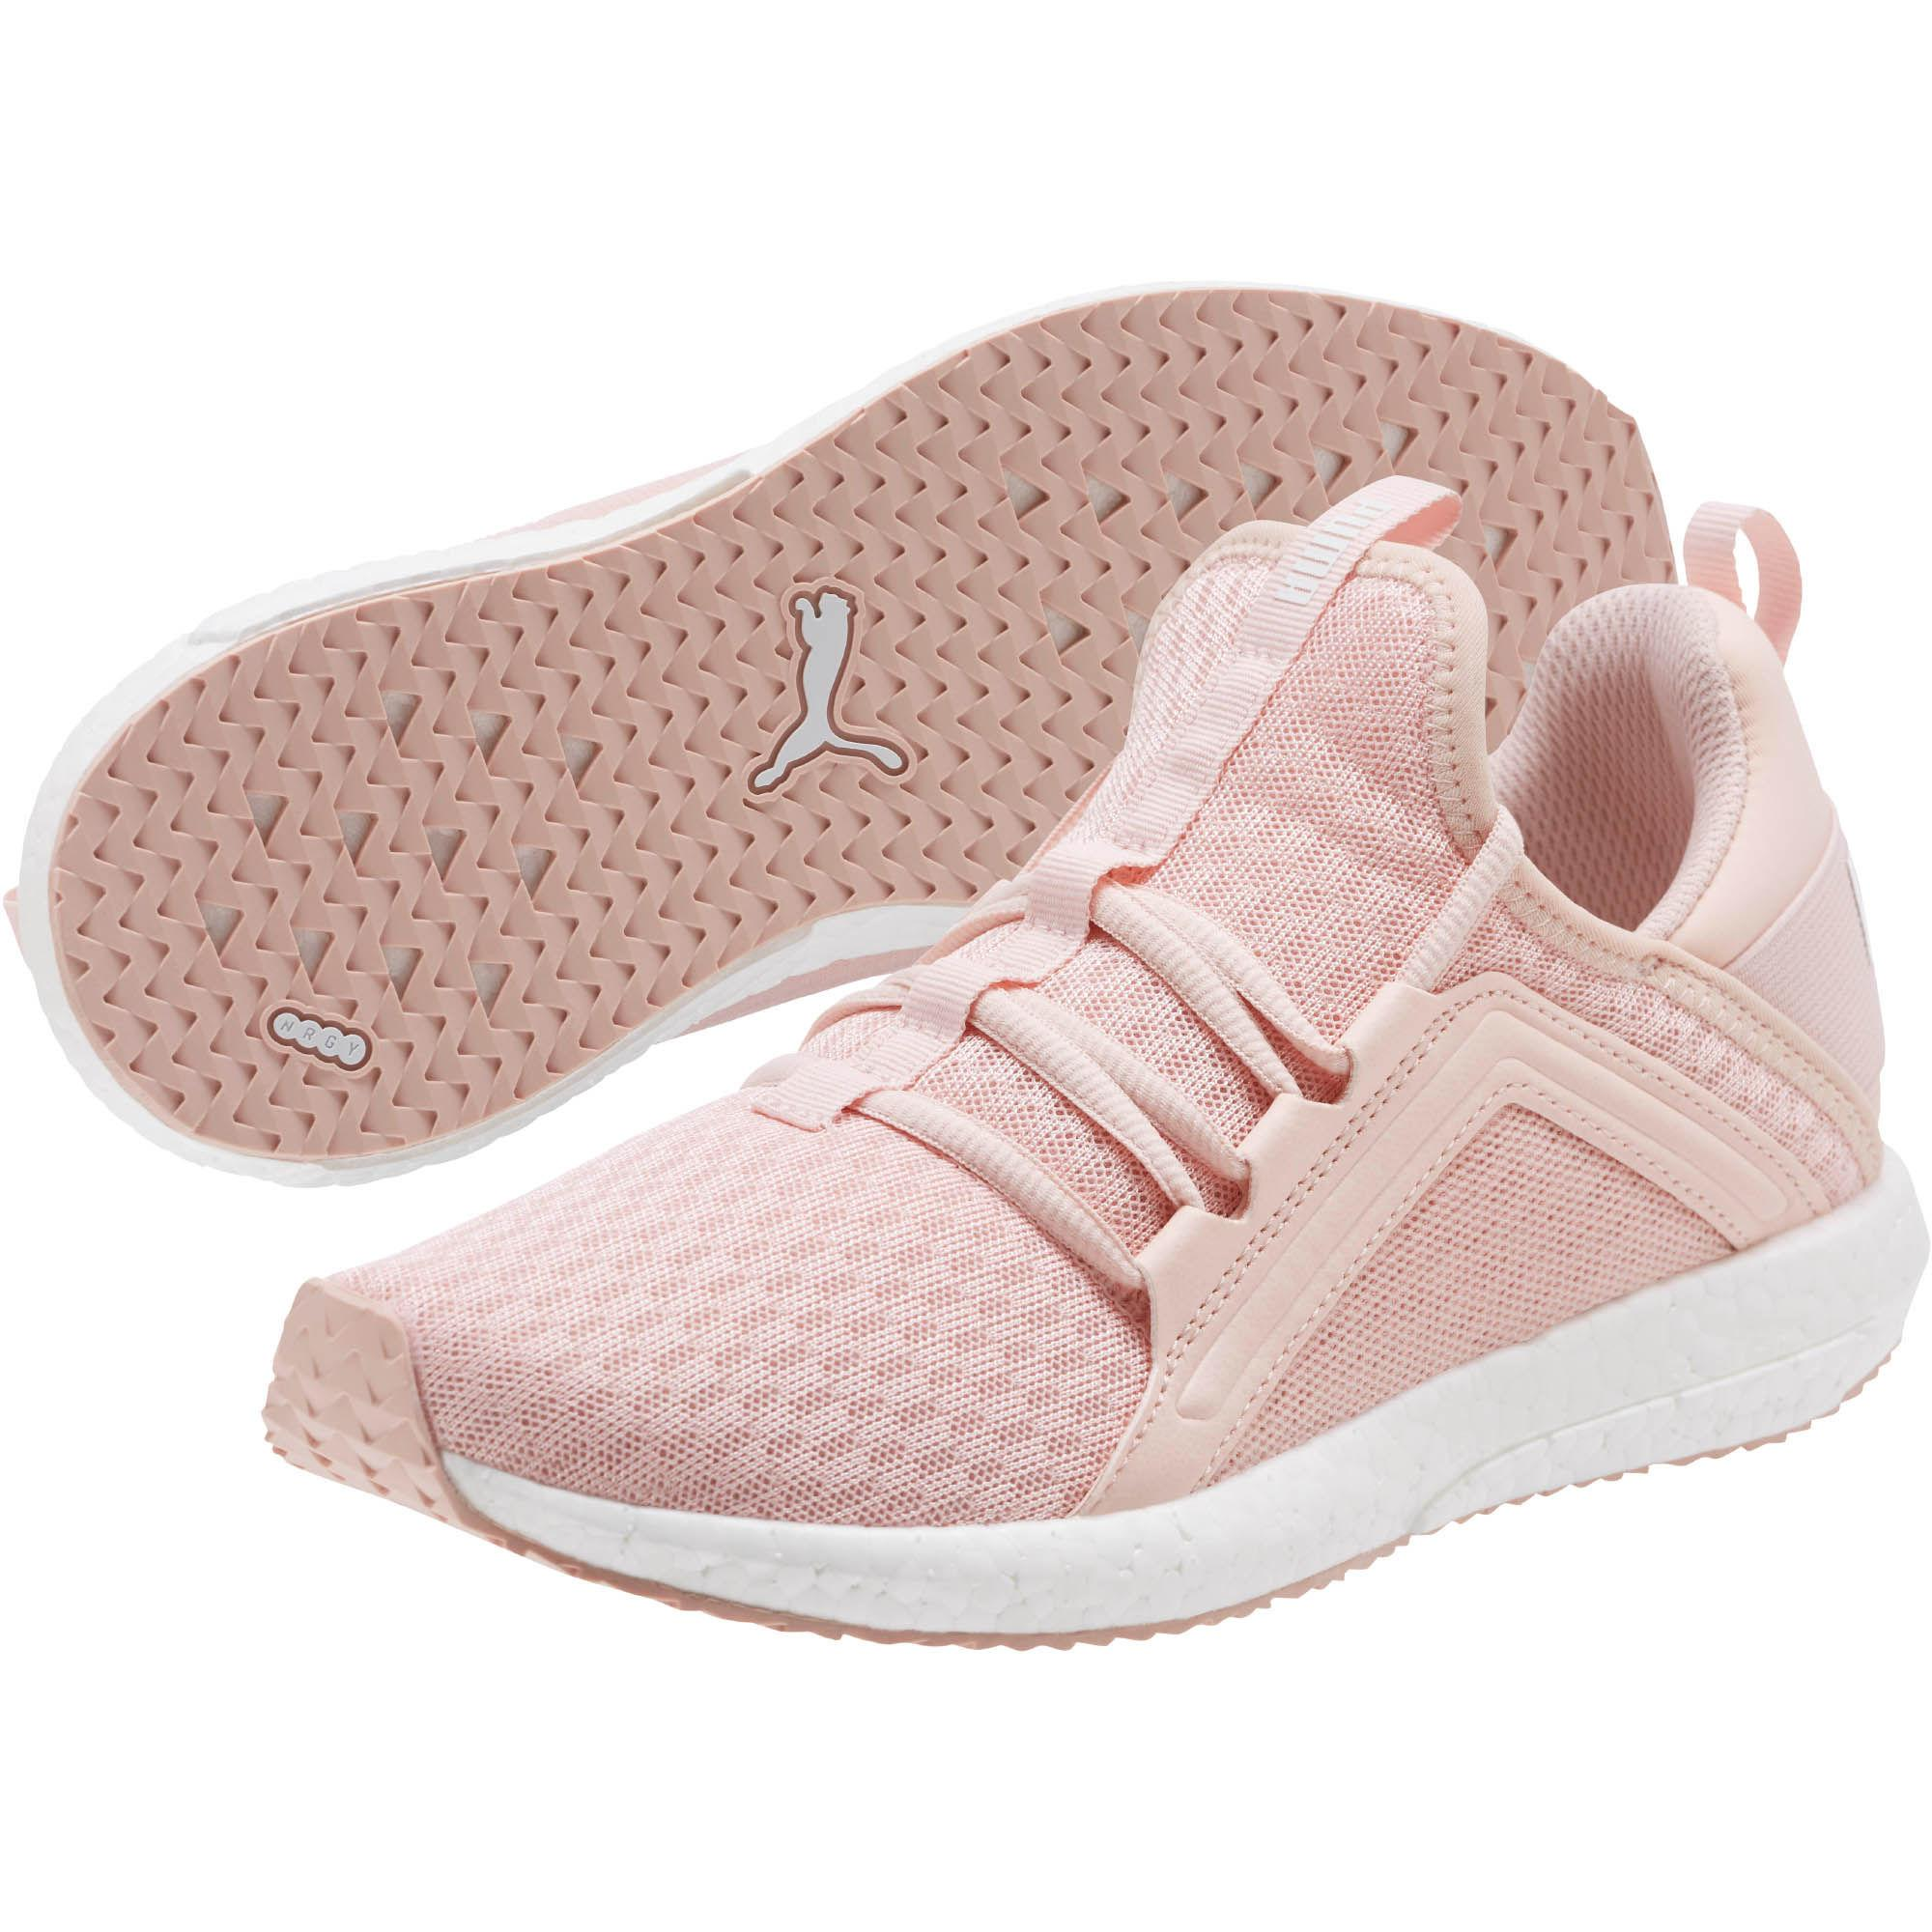 5c1505761c1553 PUMA Mega Nrgy Women's Trainers in Pink - Lyst